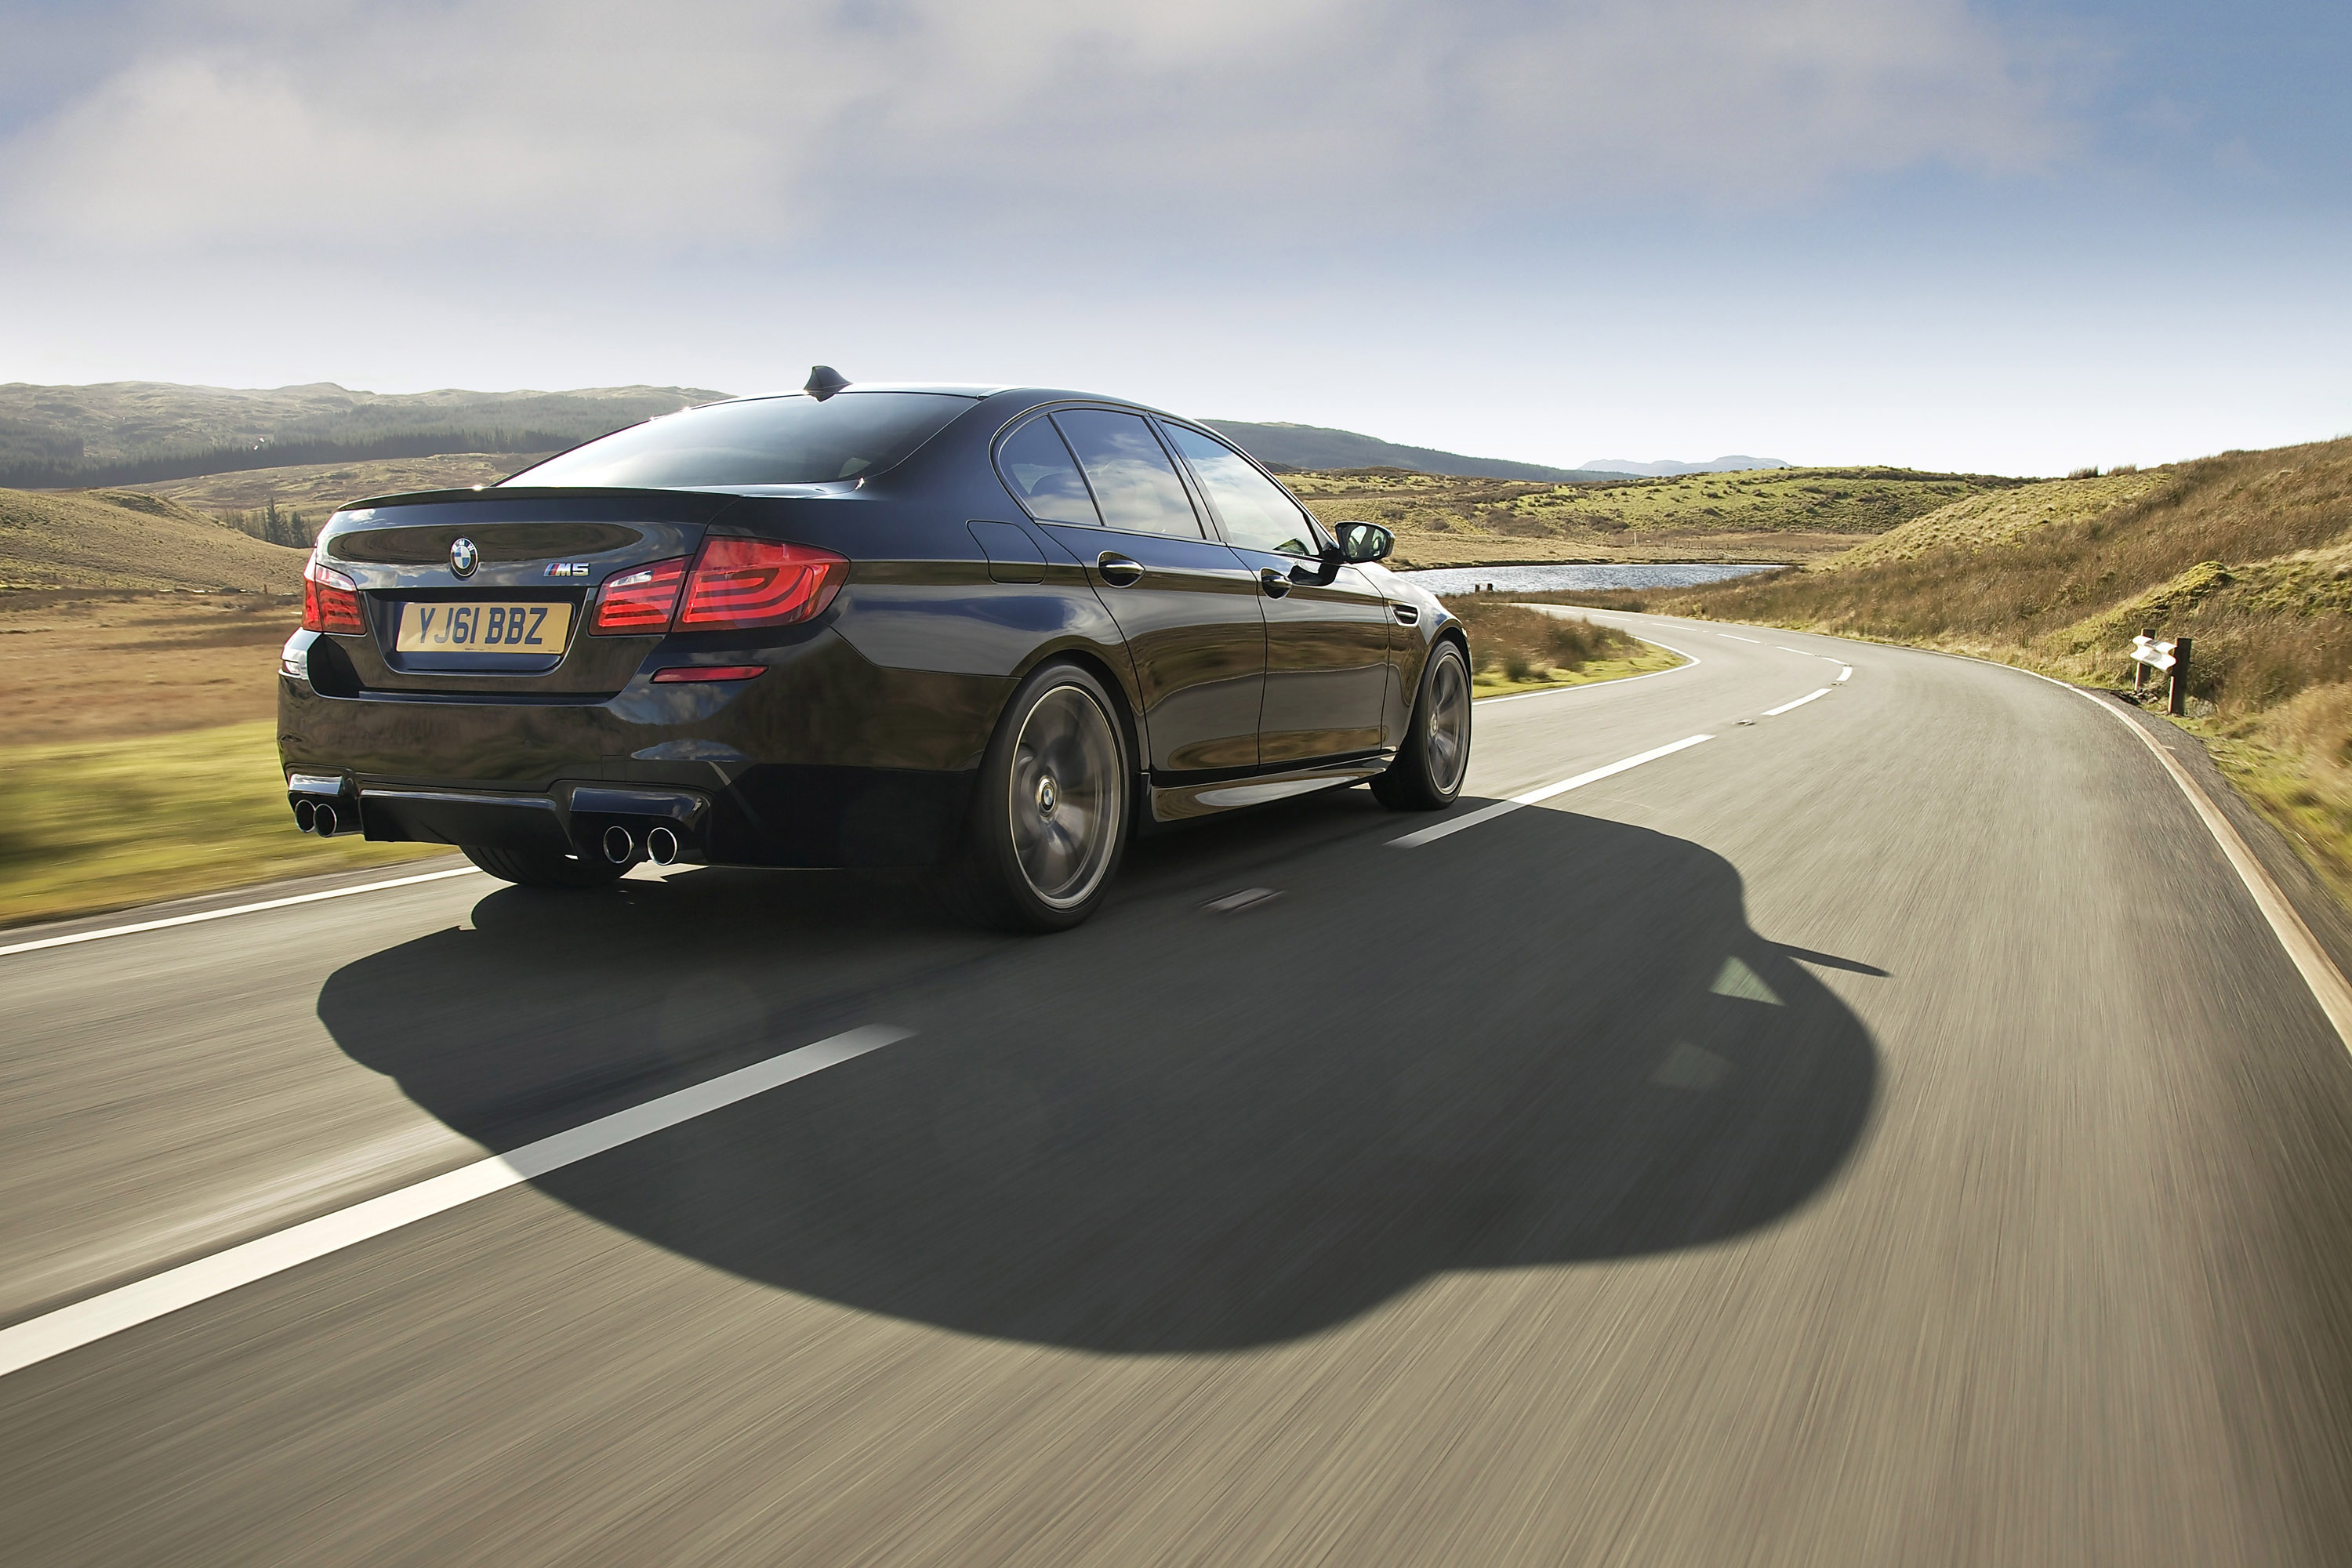 2012 BMW F10 M5 Saloon UK - Picture 60728